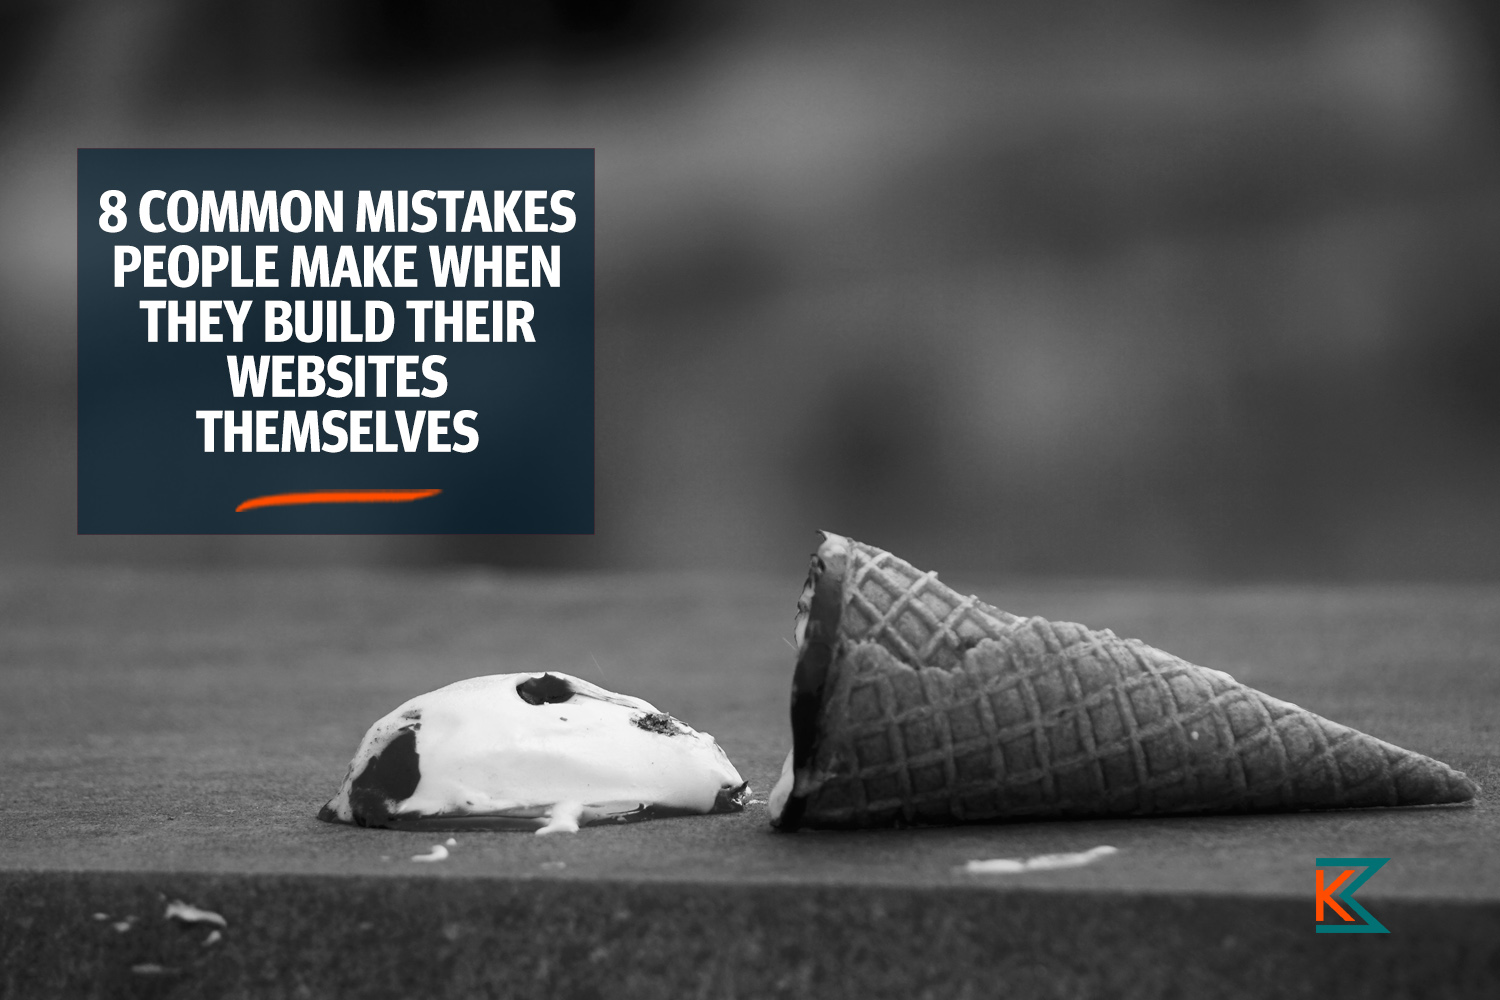 8-common-mistakes-people-make-when-they-build-their-websites-themselves